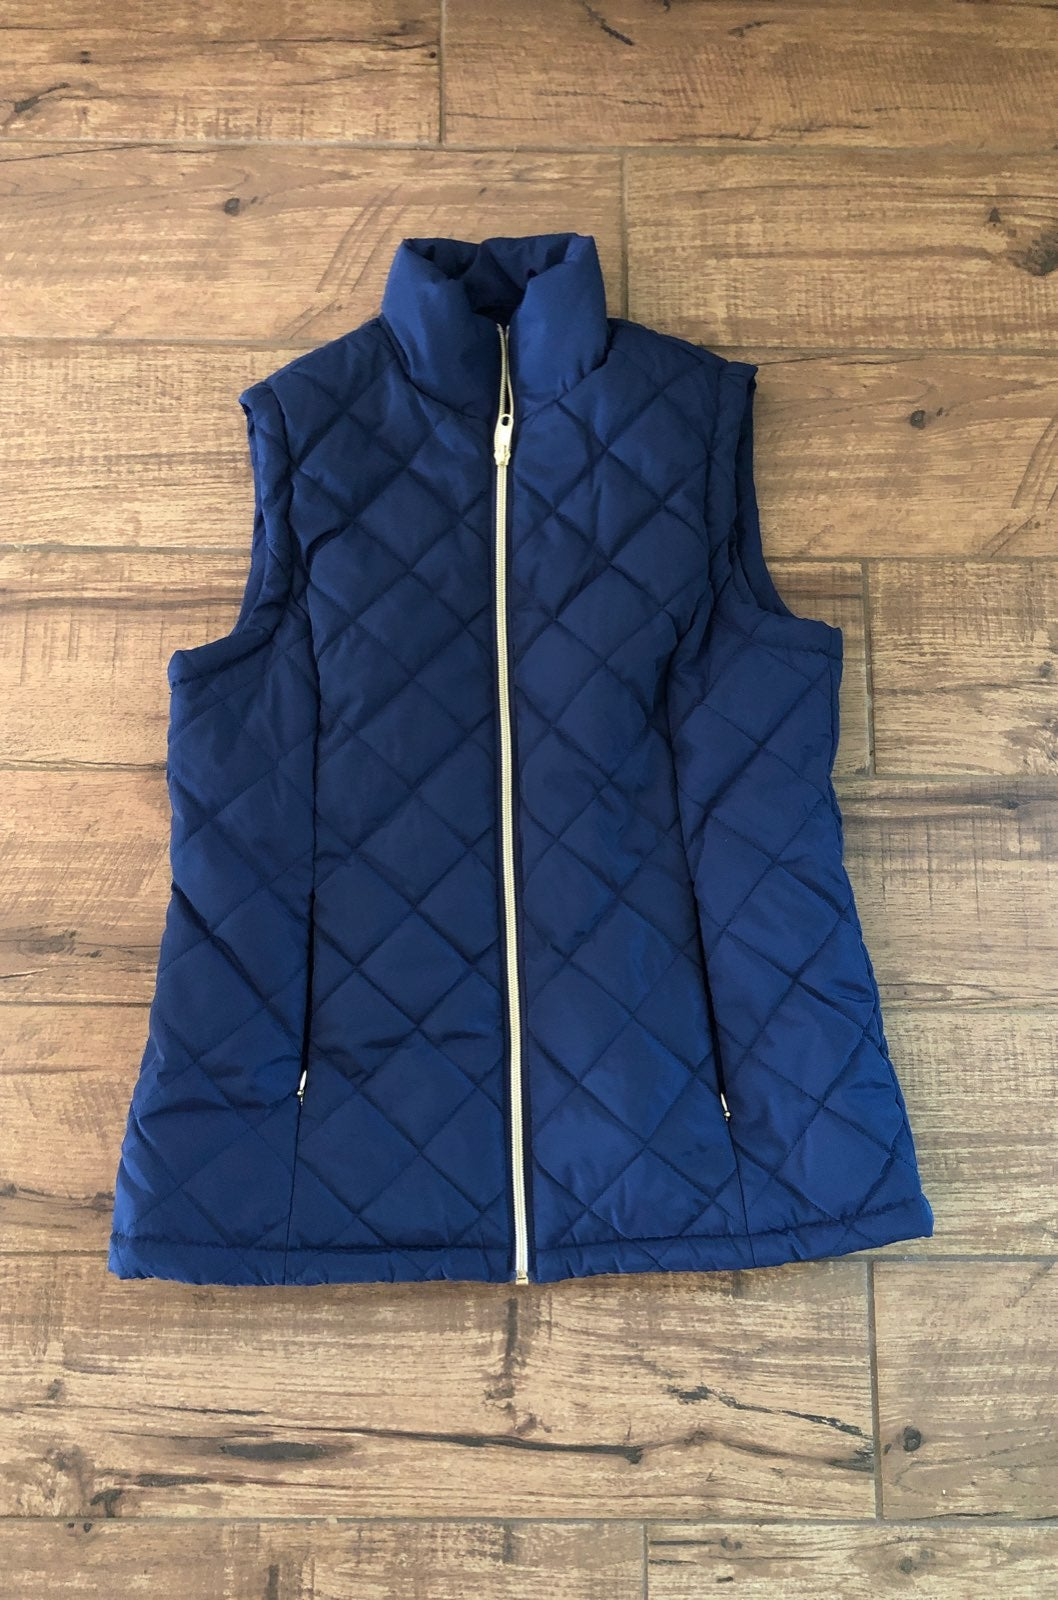 Bright Navy Blue Vest Women's Small